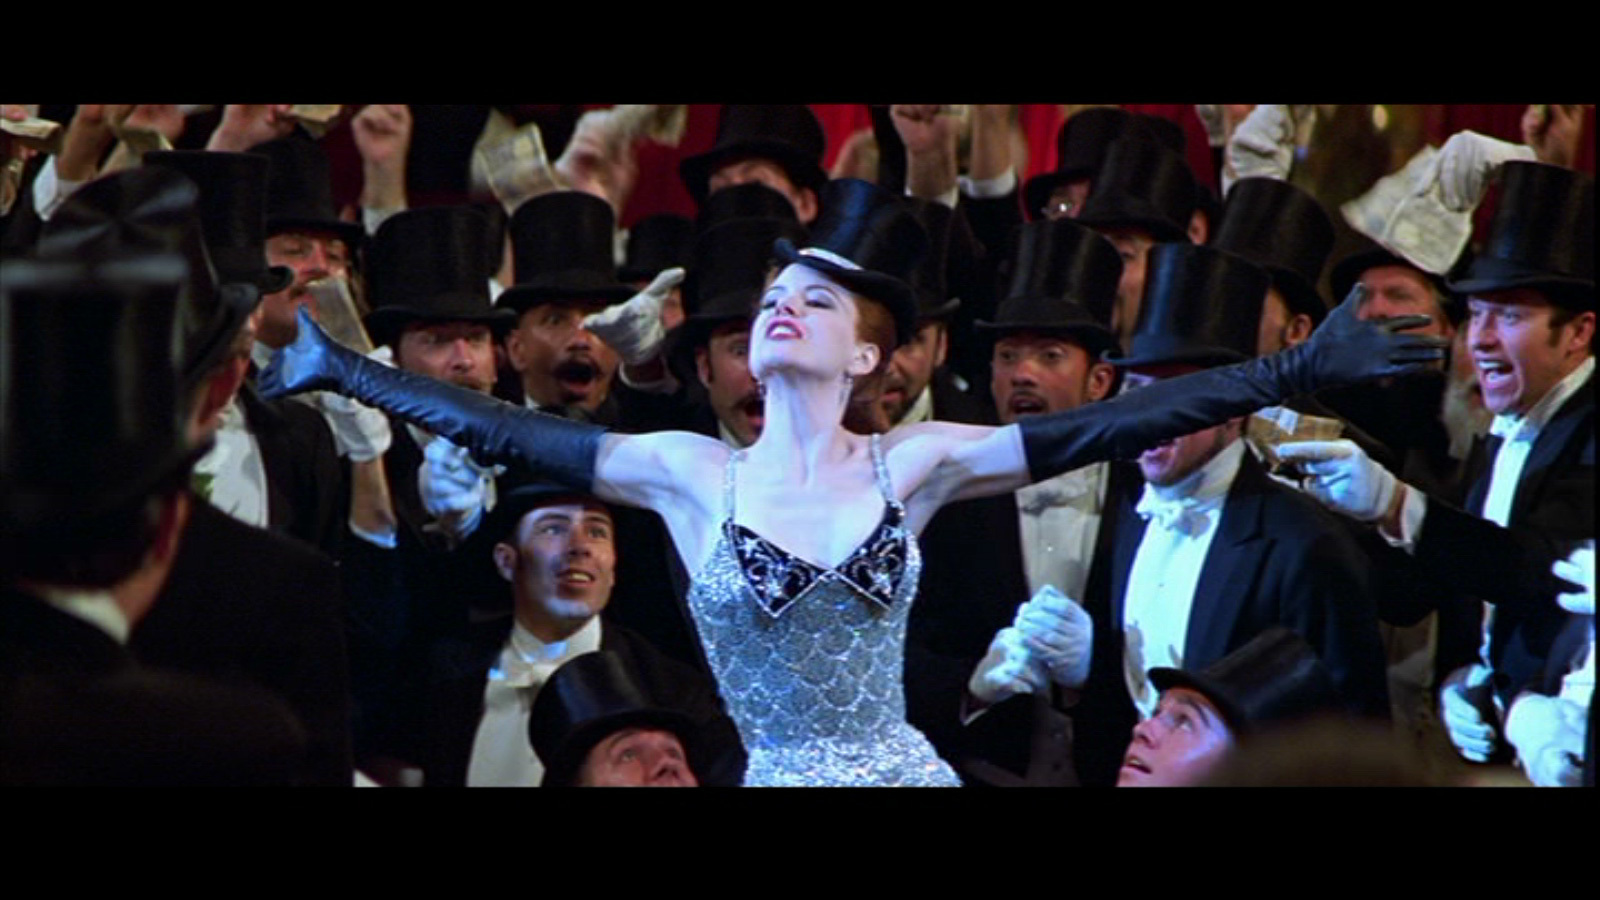 an analysis of moulin rouge This scene, taken from the film 'moulin rouge', is used in telling the story of what is happening at this point in the film between satine, a star courtesan in the moulin rouge nightclub, and the duke, who she is pretending to be in love with.